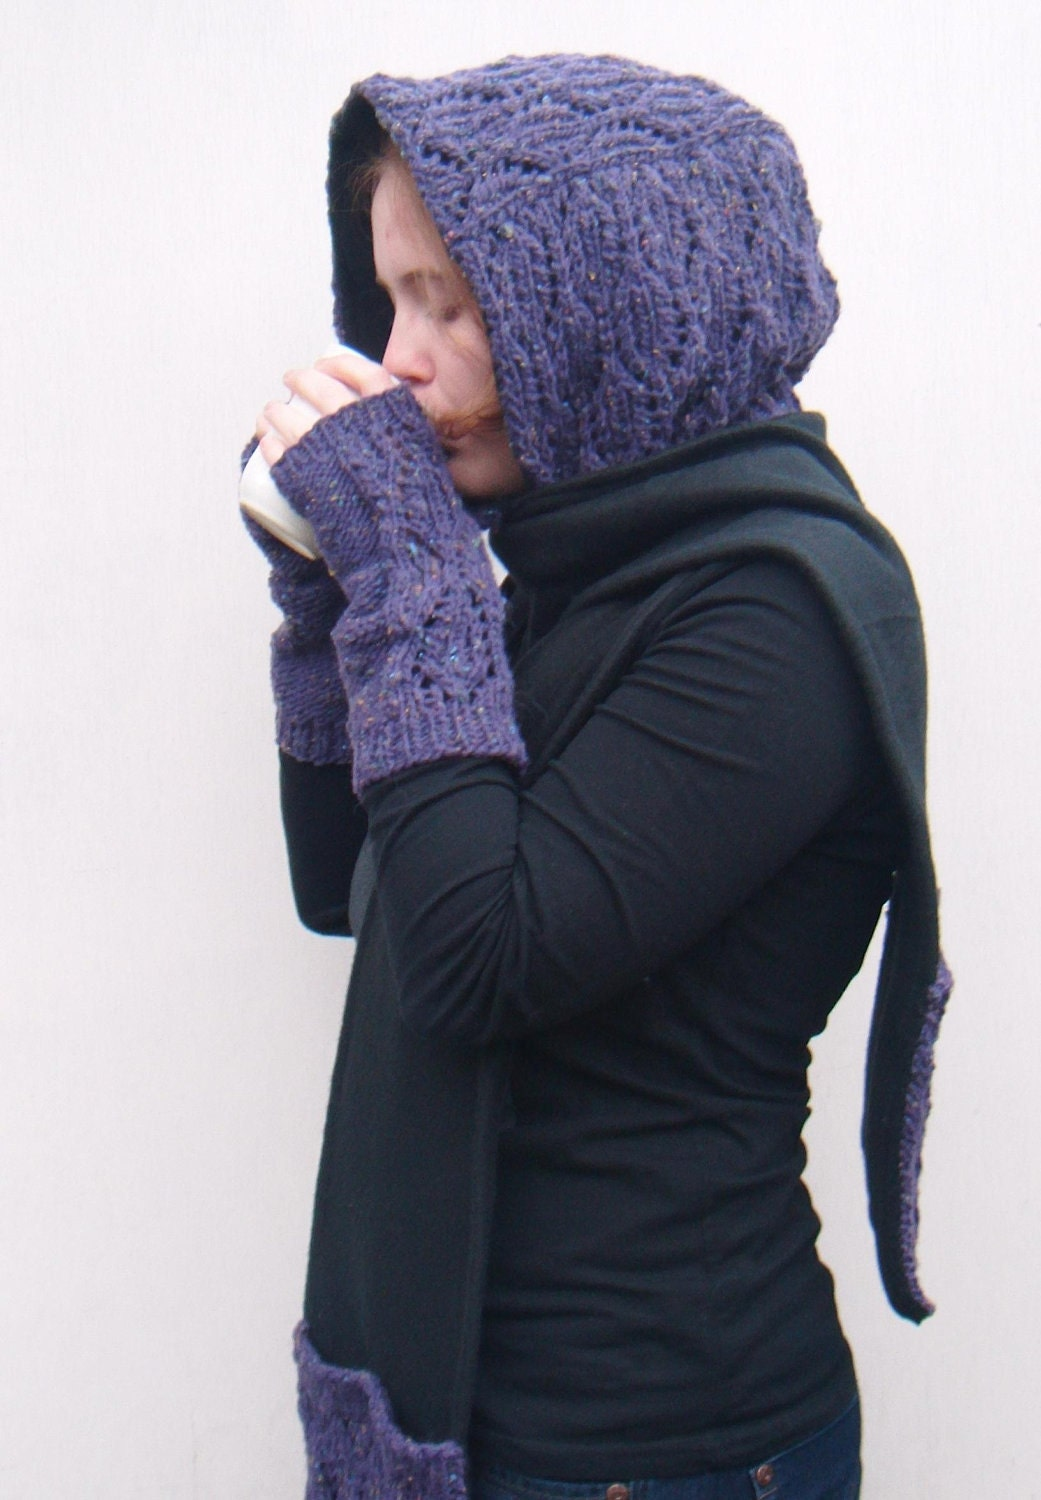 Knitting Pattern For A Scarf With Pockets : Hooded Scarf with Pockets Pocket Scarf Hoodie Scoodie Knit